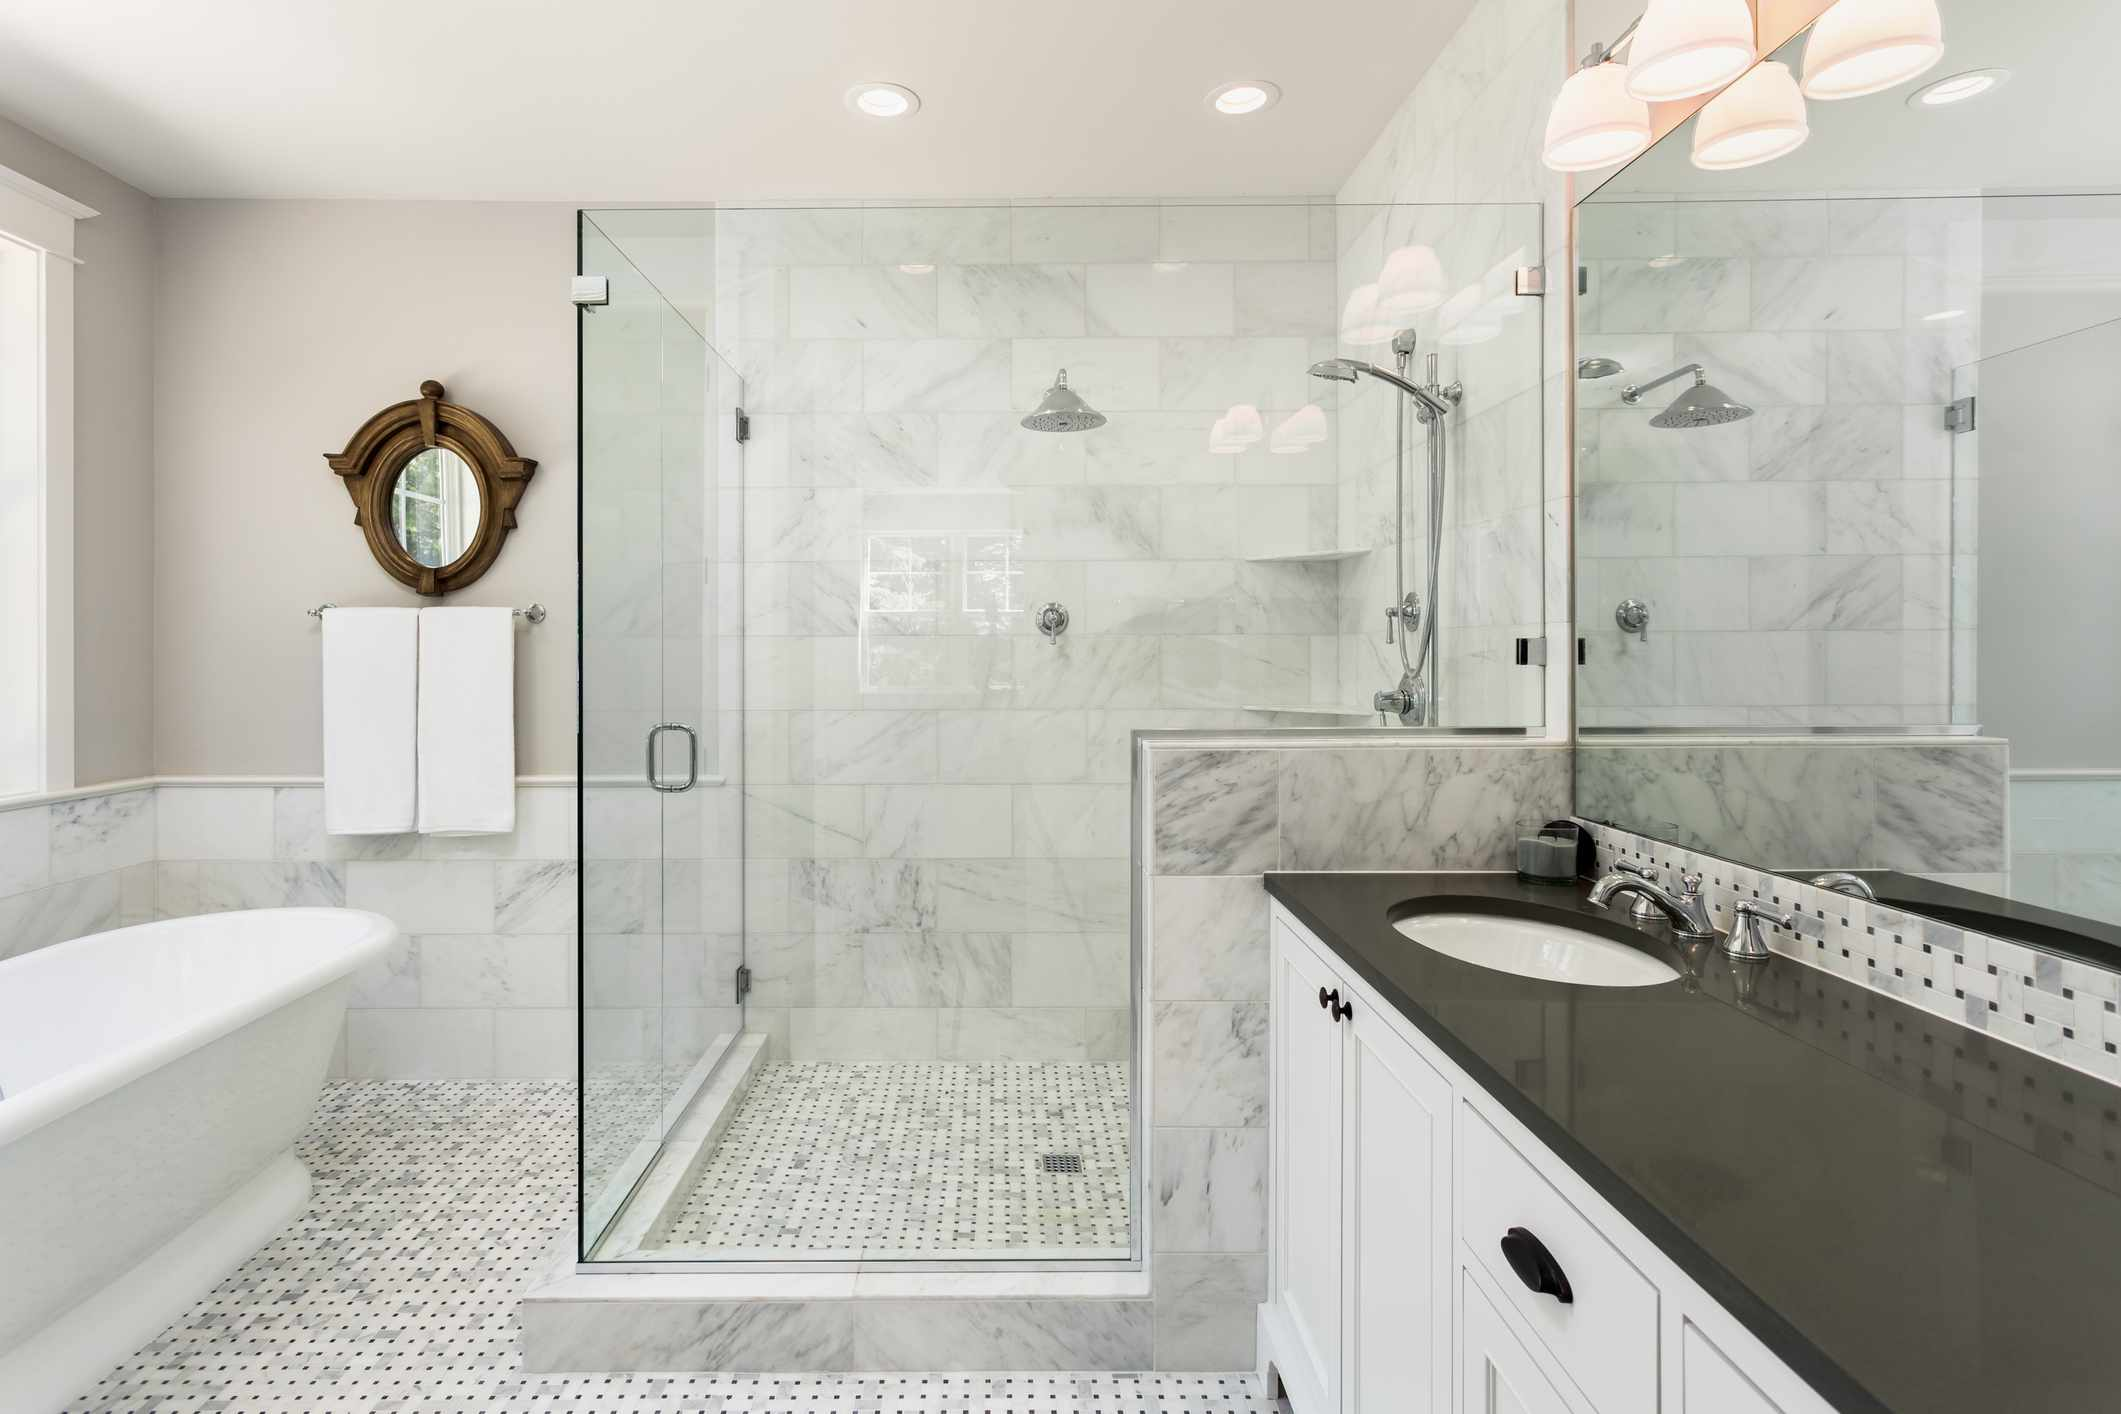 Modern bathroom with French country accents